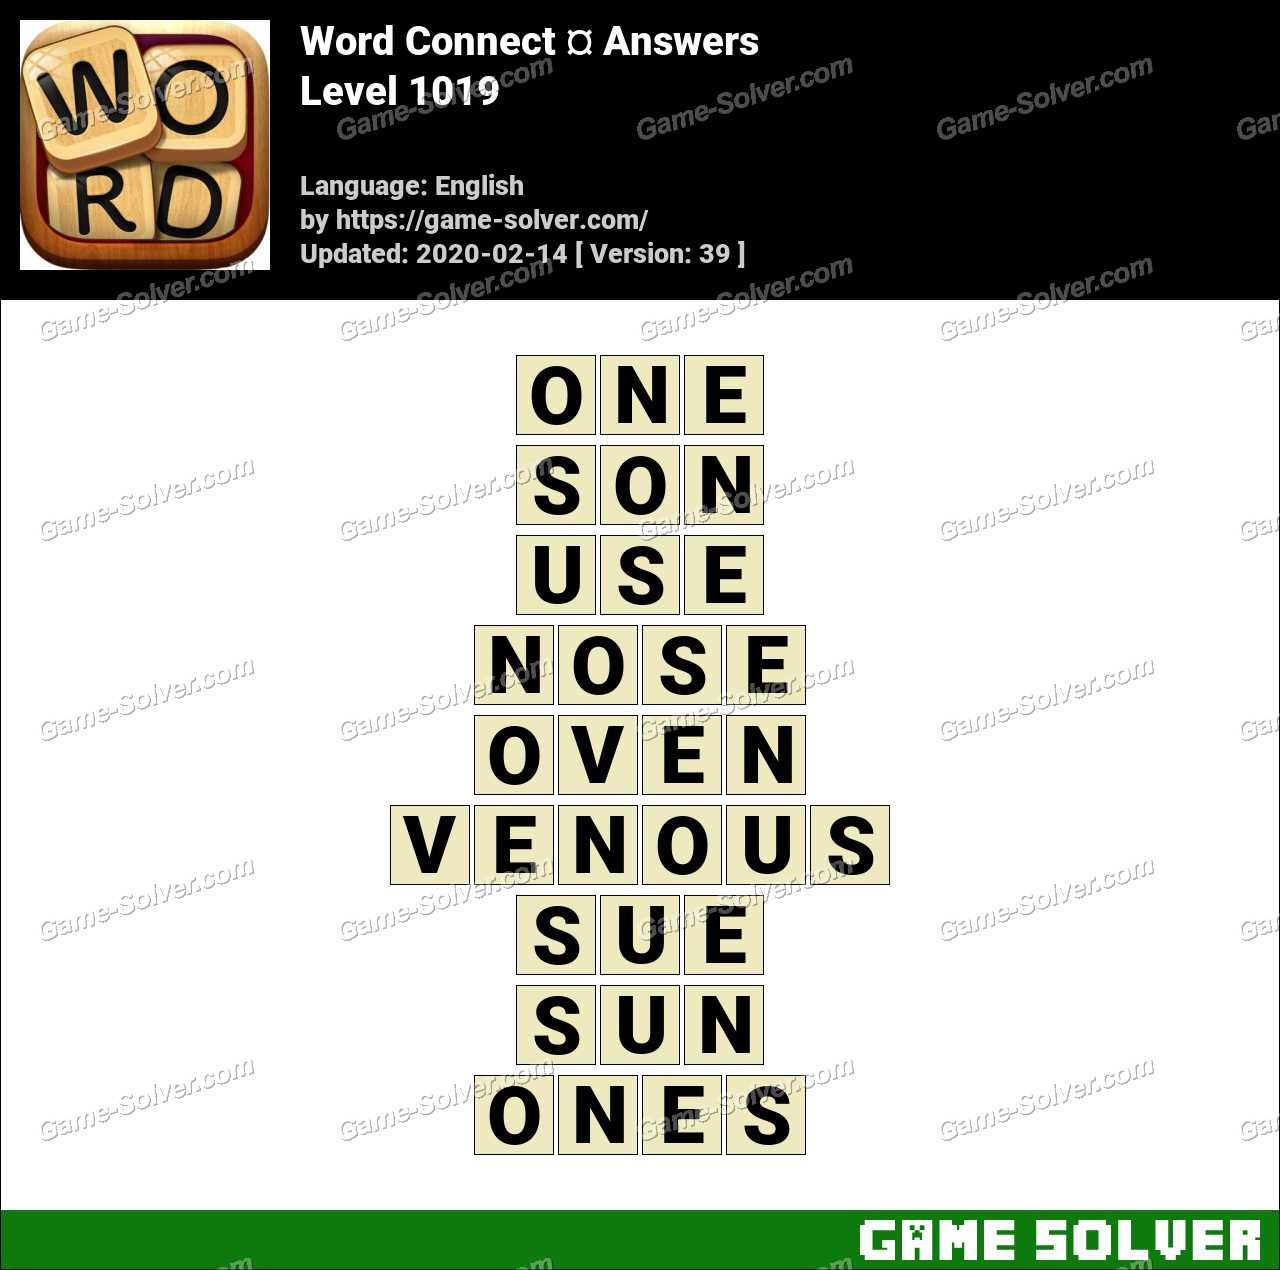 Word Connect Level 1019 Answers